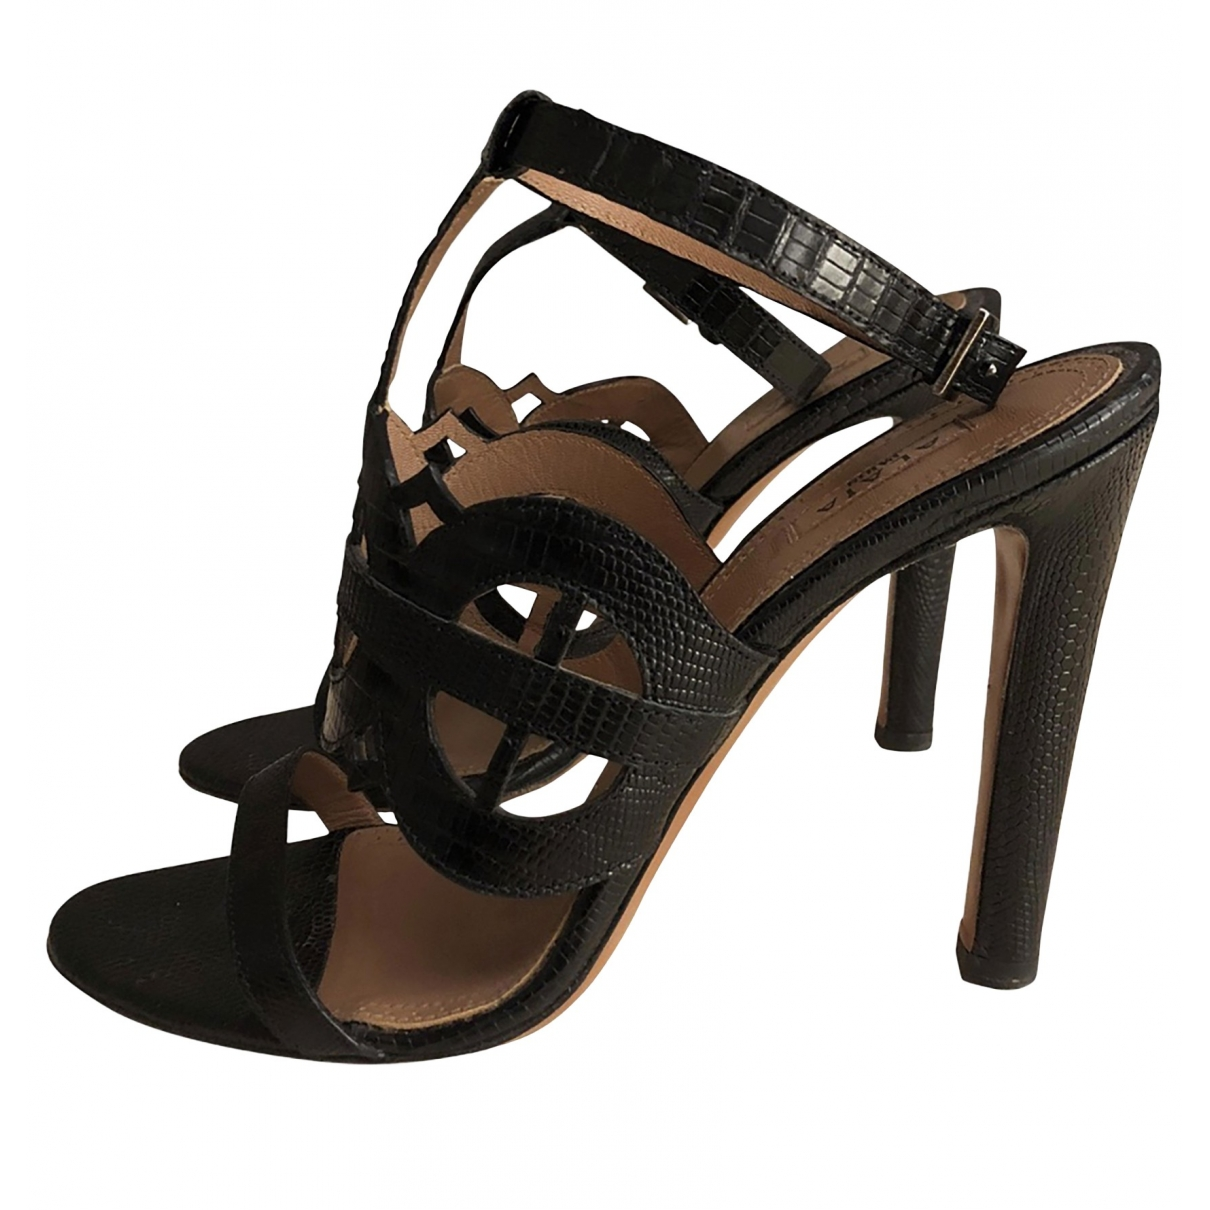 Alaïa \N Black Exotic leathers Sandals for Women 38.5 EU